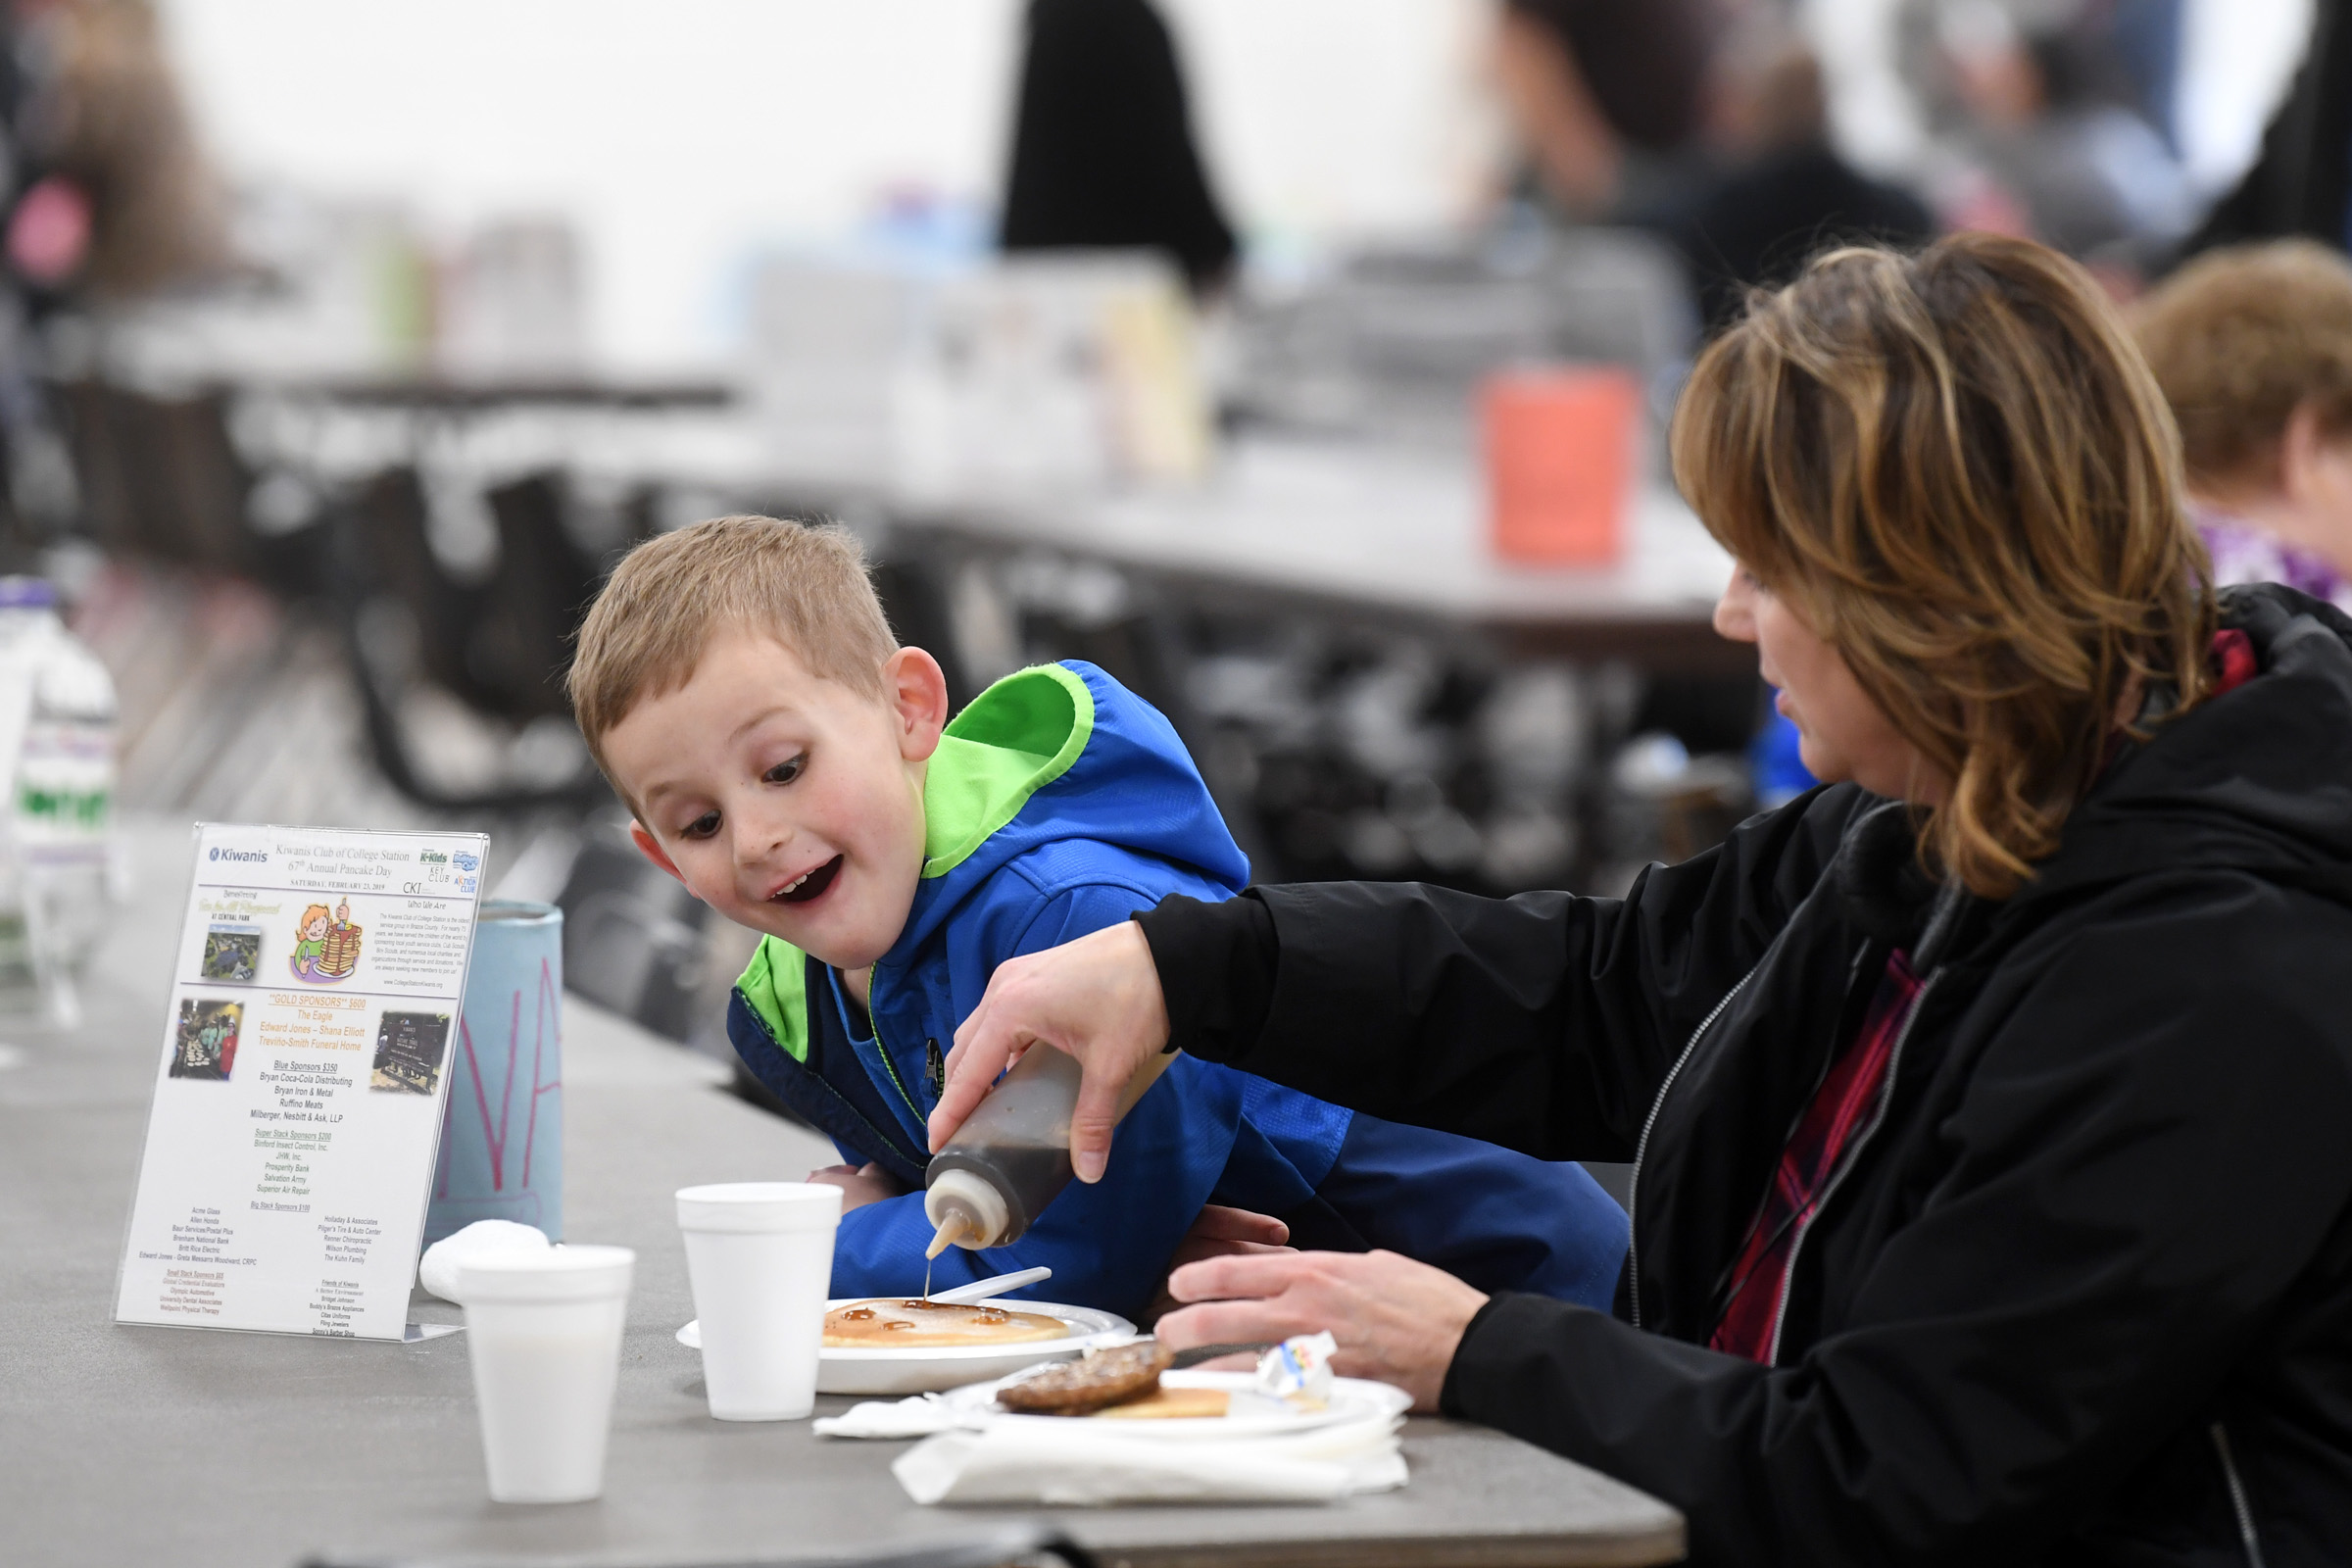 Evan Eneks, 5, smiles as his mom, Brandie, draws a happy face in syrup on his pancakes during the 67th Annual Pancake Day sponsored by the Kiwanis Club of College Station on Saturday, Feb.23, 2019, at the Brazos Center in Bryan, Texas. The event also included area non-profits offering games and crafts for children. A portion of the proceeds from Pancake Day benefitted the Fun For All Playground. (Laura McKenzie/The Eagle)